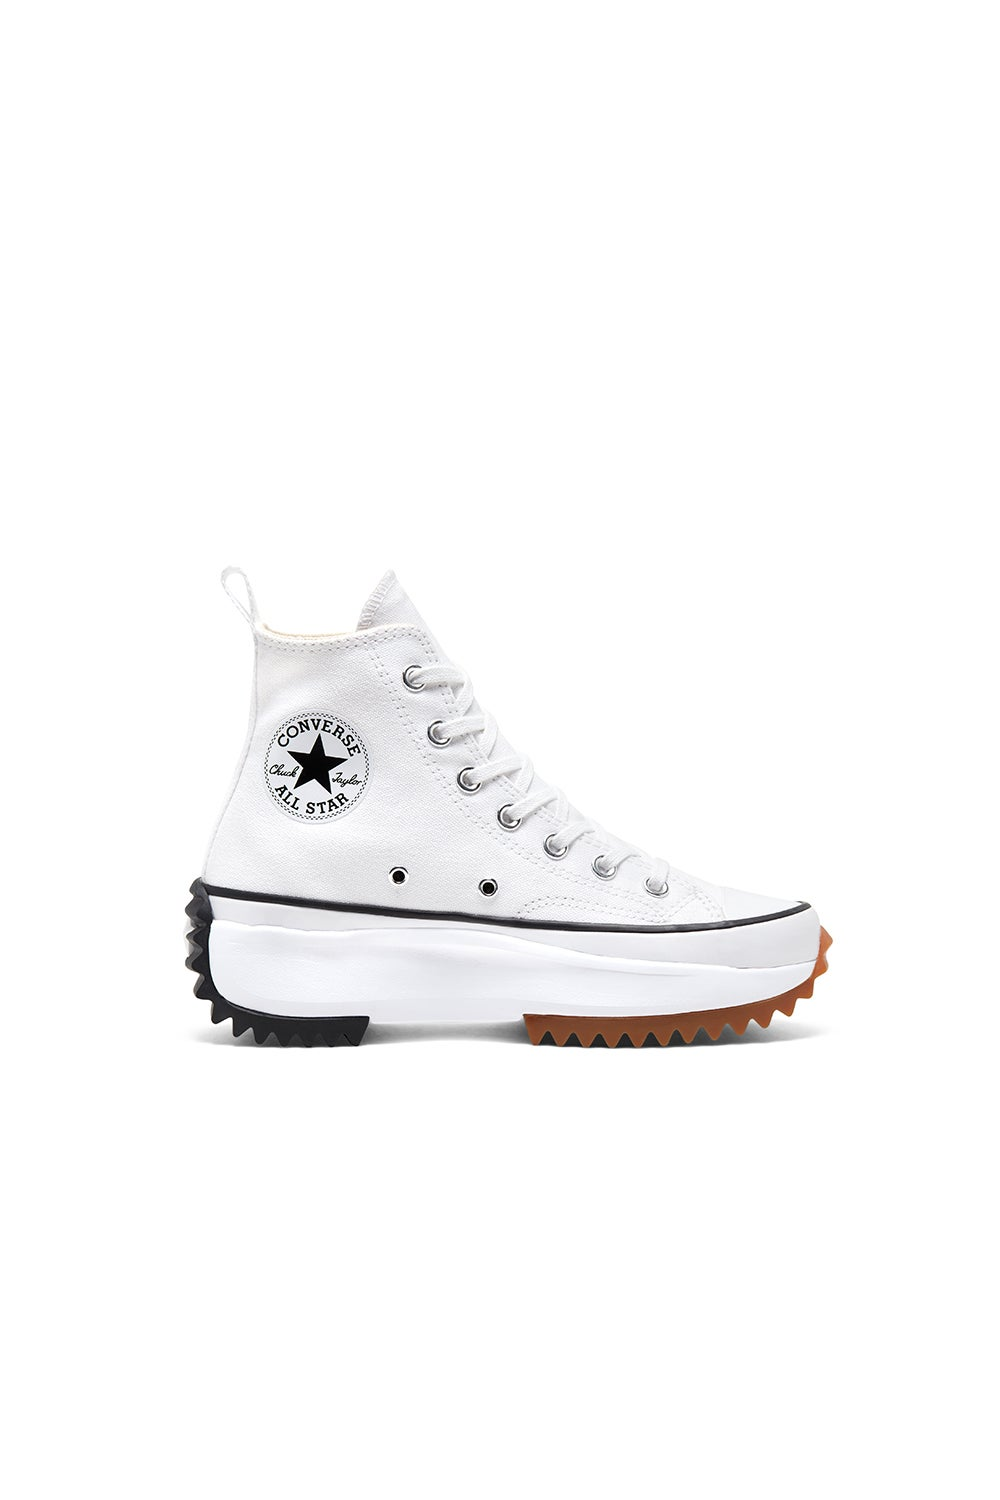 Converse Run Star Hike White